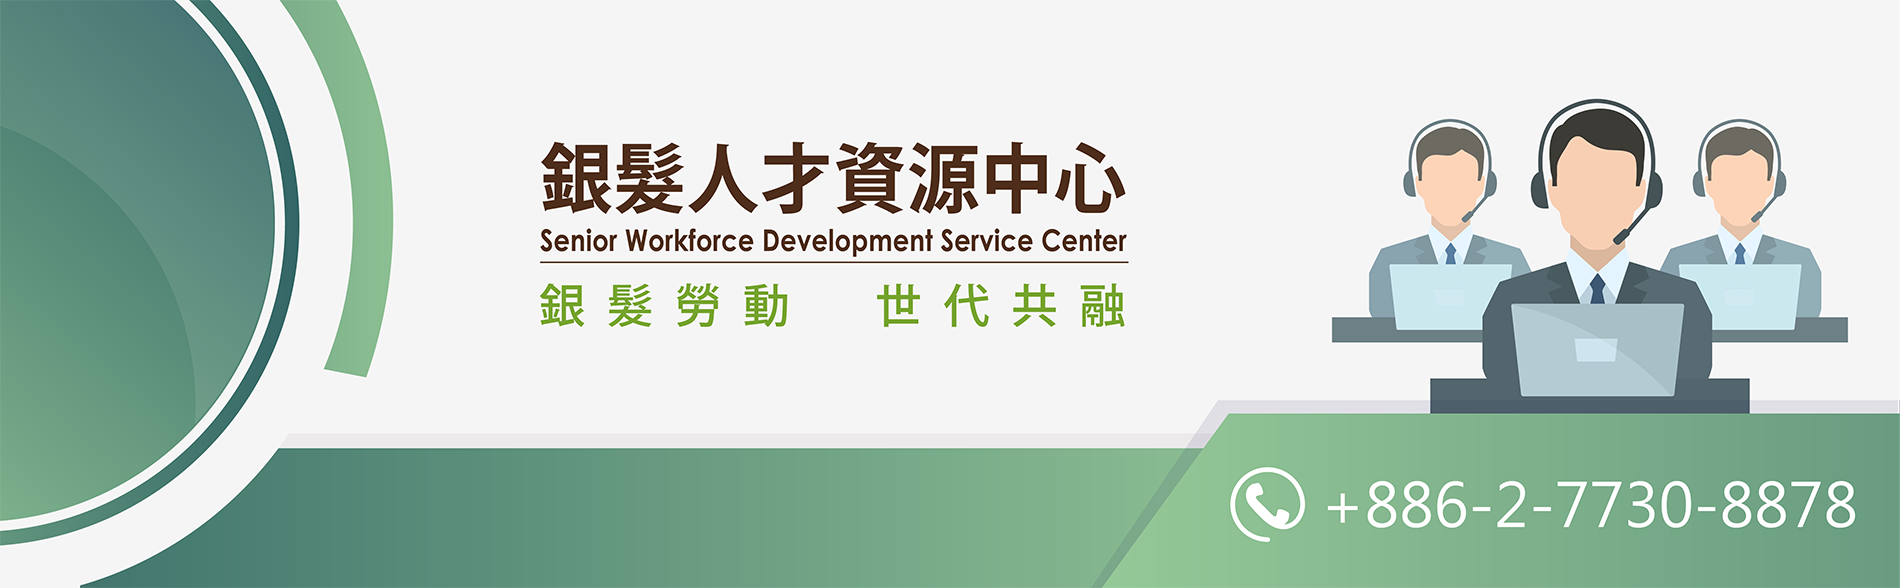 welcome to Senior Workforce Development Service Center